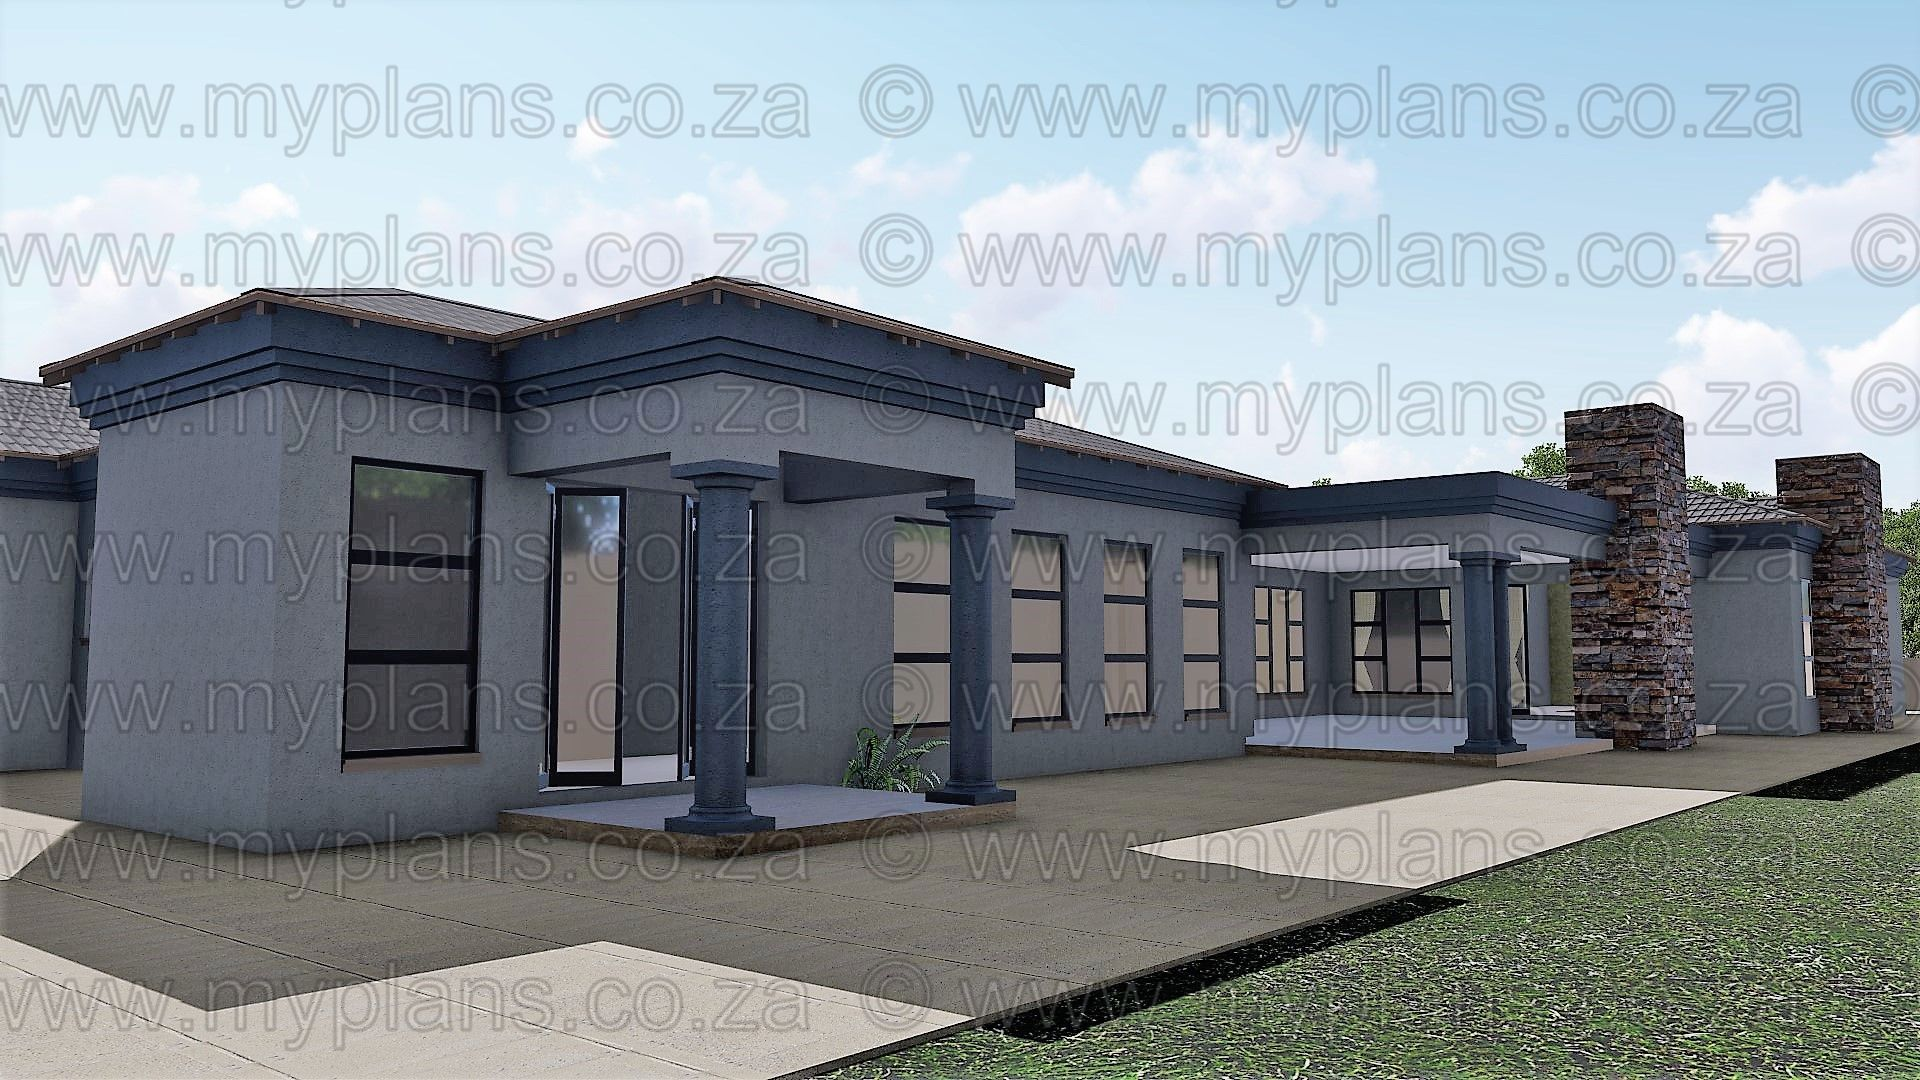 4 Bedroom House Plan Mlb 058 1s My Building Plans South Africa